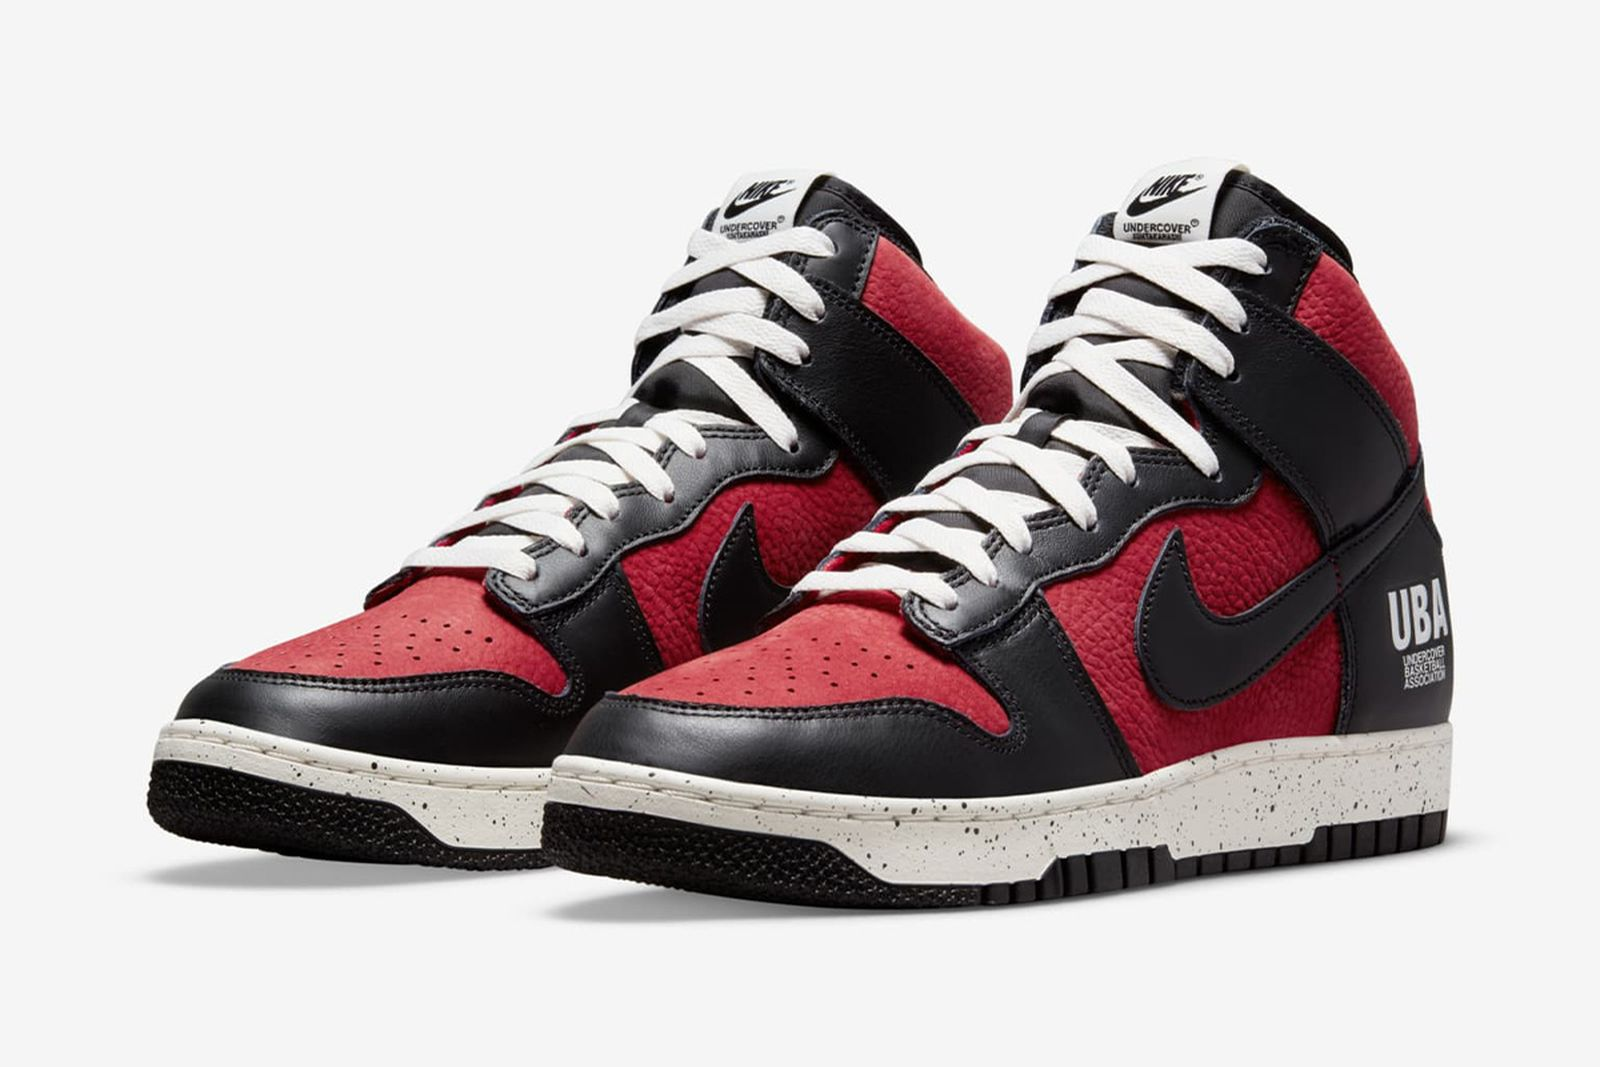 undercover-nike-dunk-high-1985-gym-red-release-date-price-01